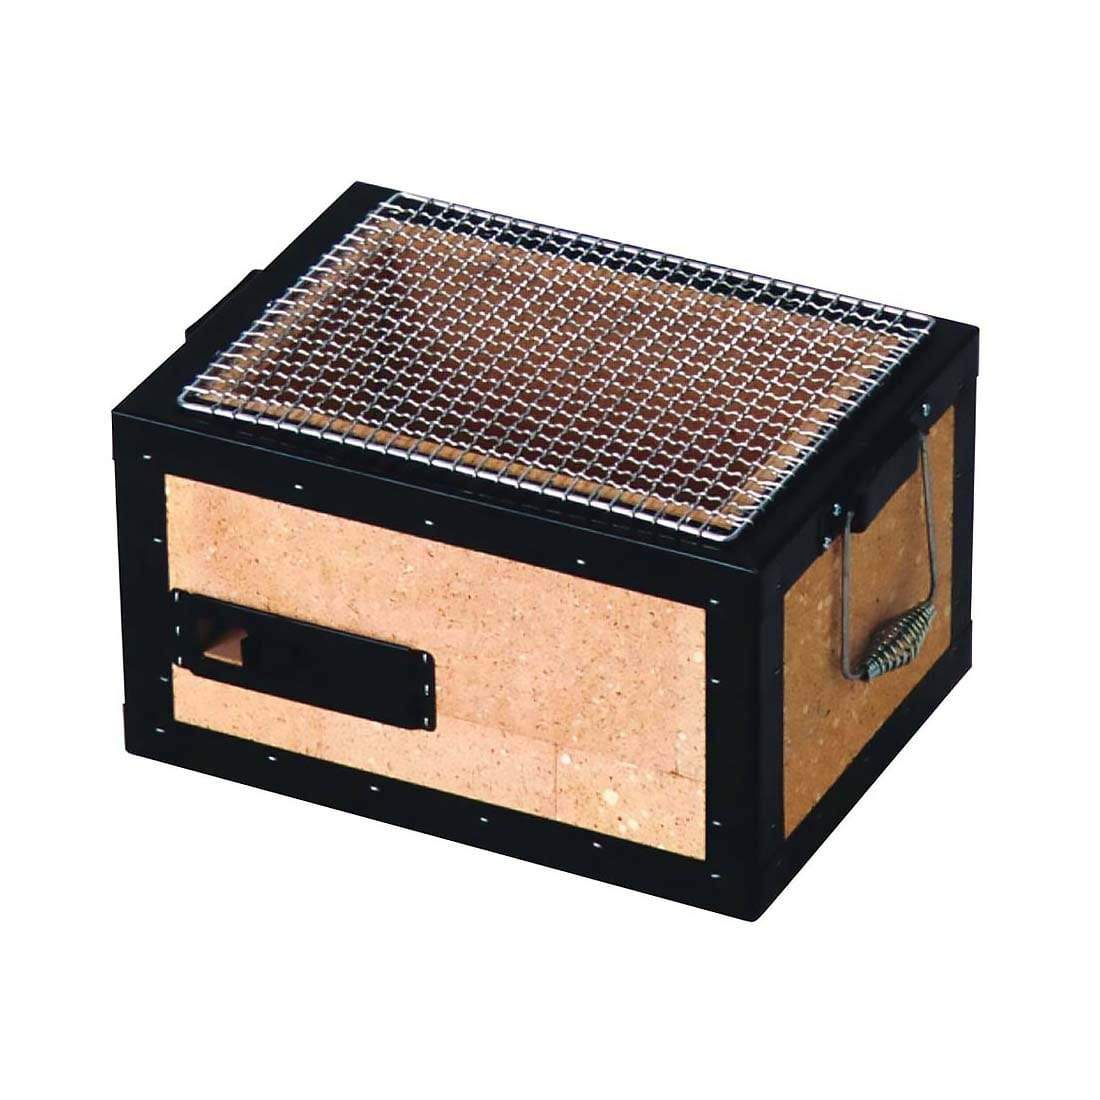 Kaginushi Charcoal Konro Grill With Mesh Net - Small Tabletop Grills